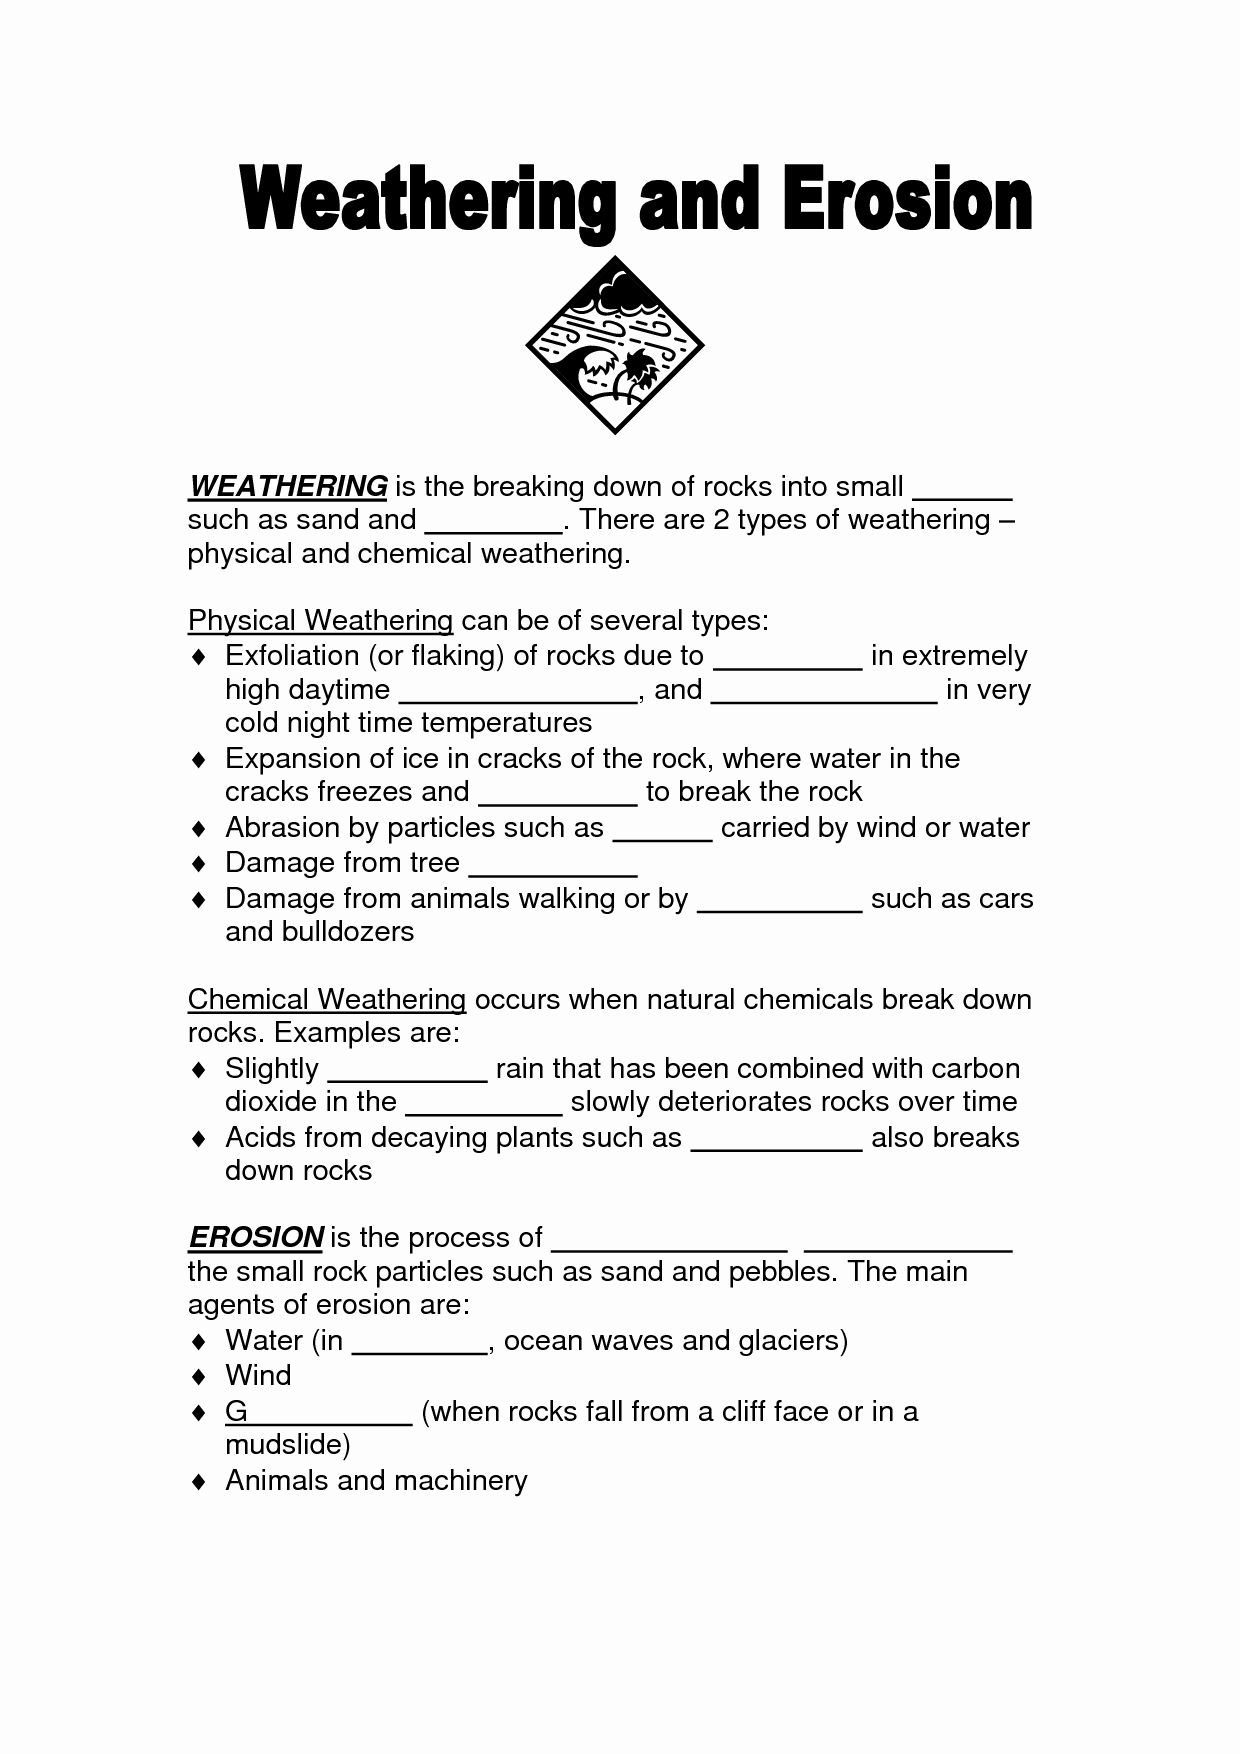 Weathering Erosion And Deposition Worksheet Elegant 16